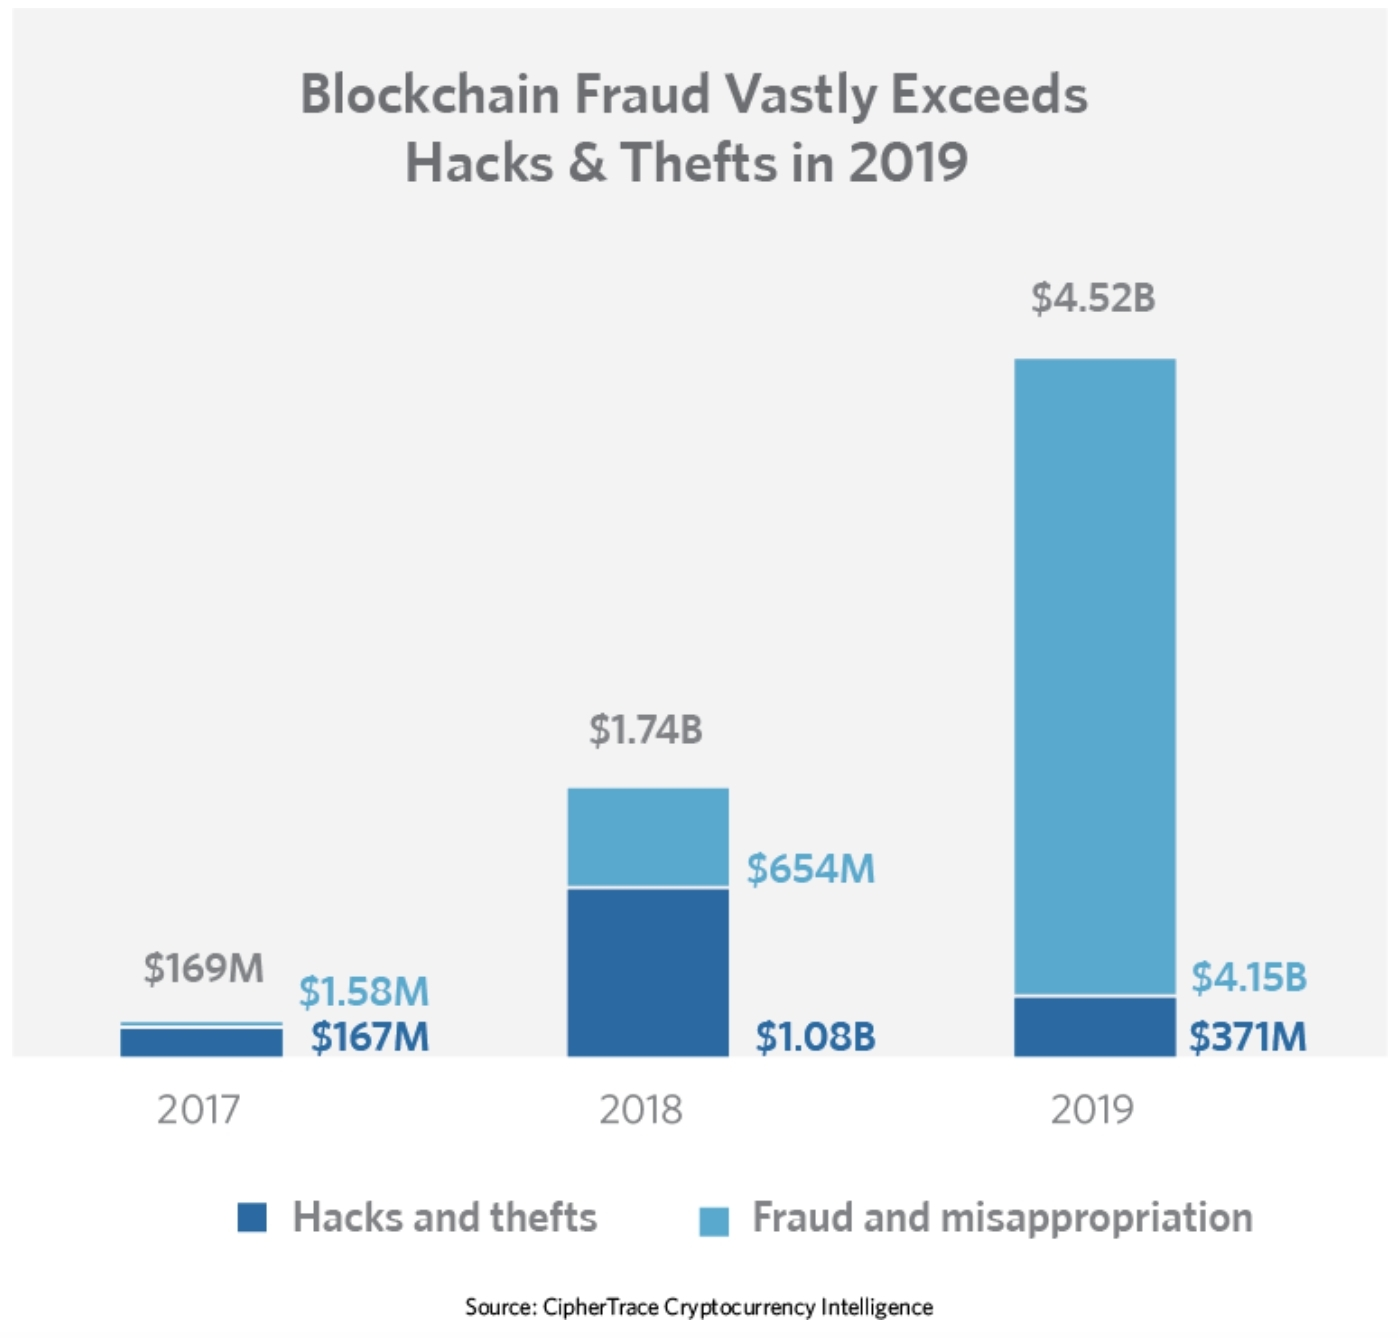 how can i report tax fraud for cryptocurrency